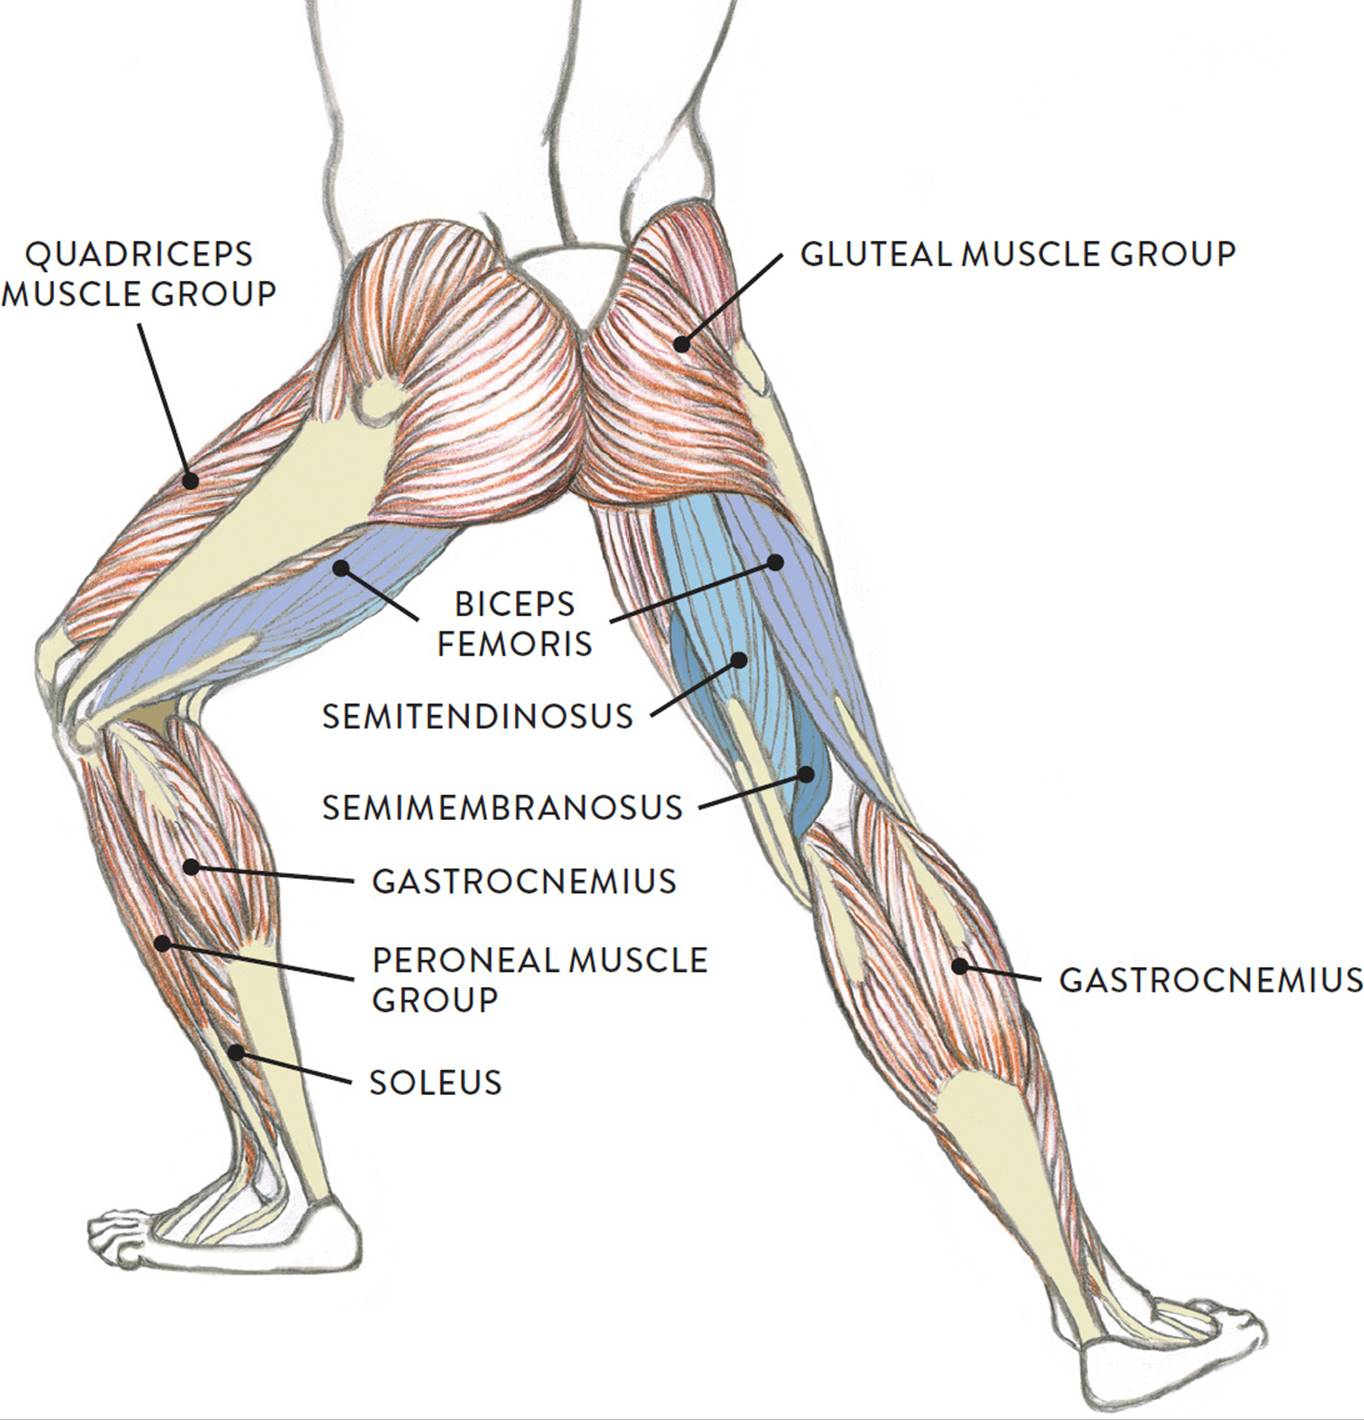 hight resolution of muscle diagram the biceps femoris pron bi seps fem or iss is positioned on the posterior and lateral portions of the upper leg as its name implies